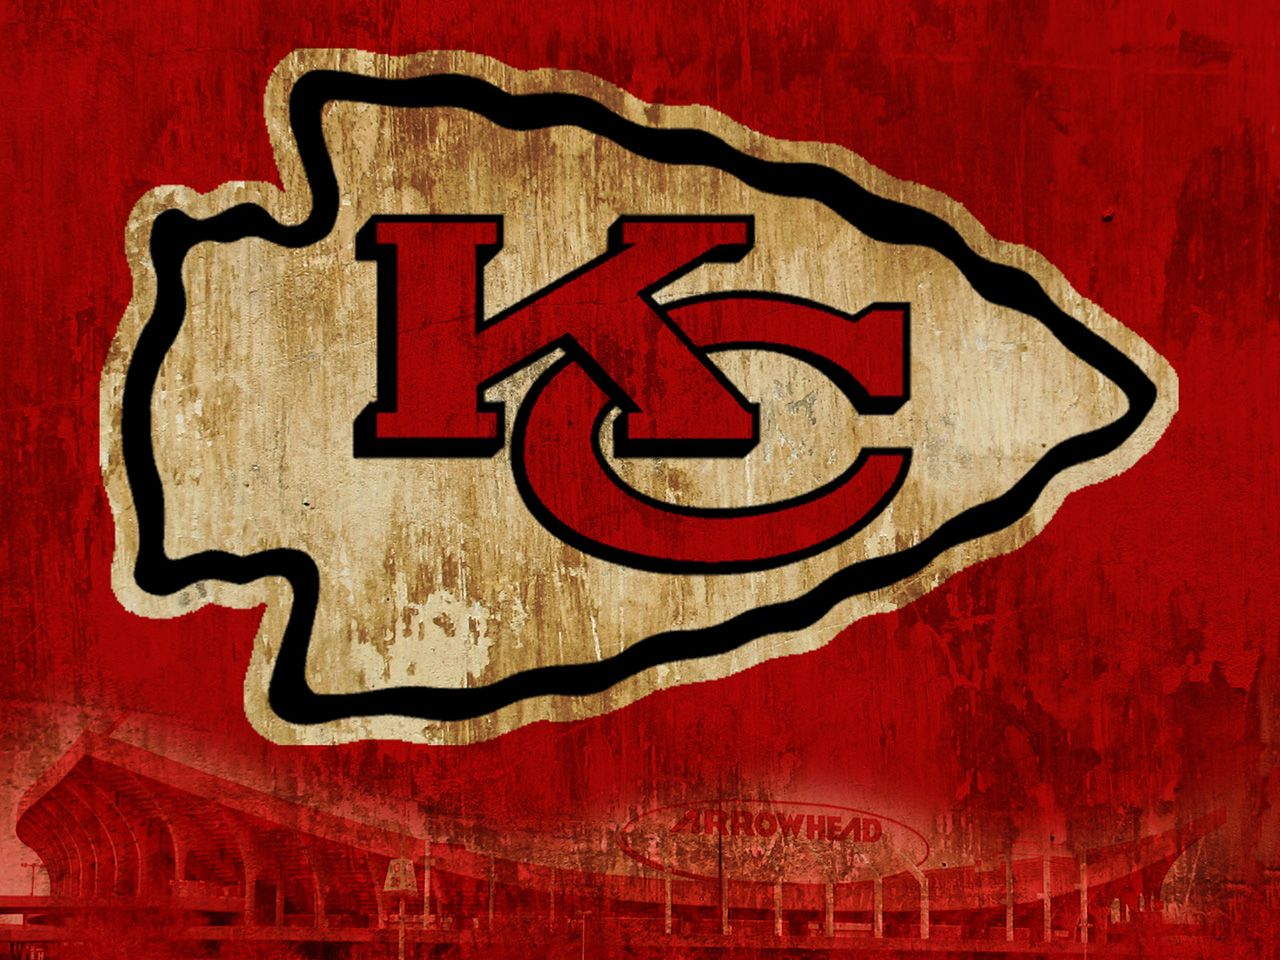 Kansas City Chiefs Chiefs Wallpaper Kansas City Chiefs Football Kansas City Chiefs